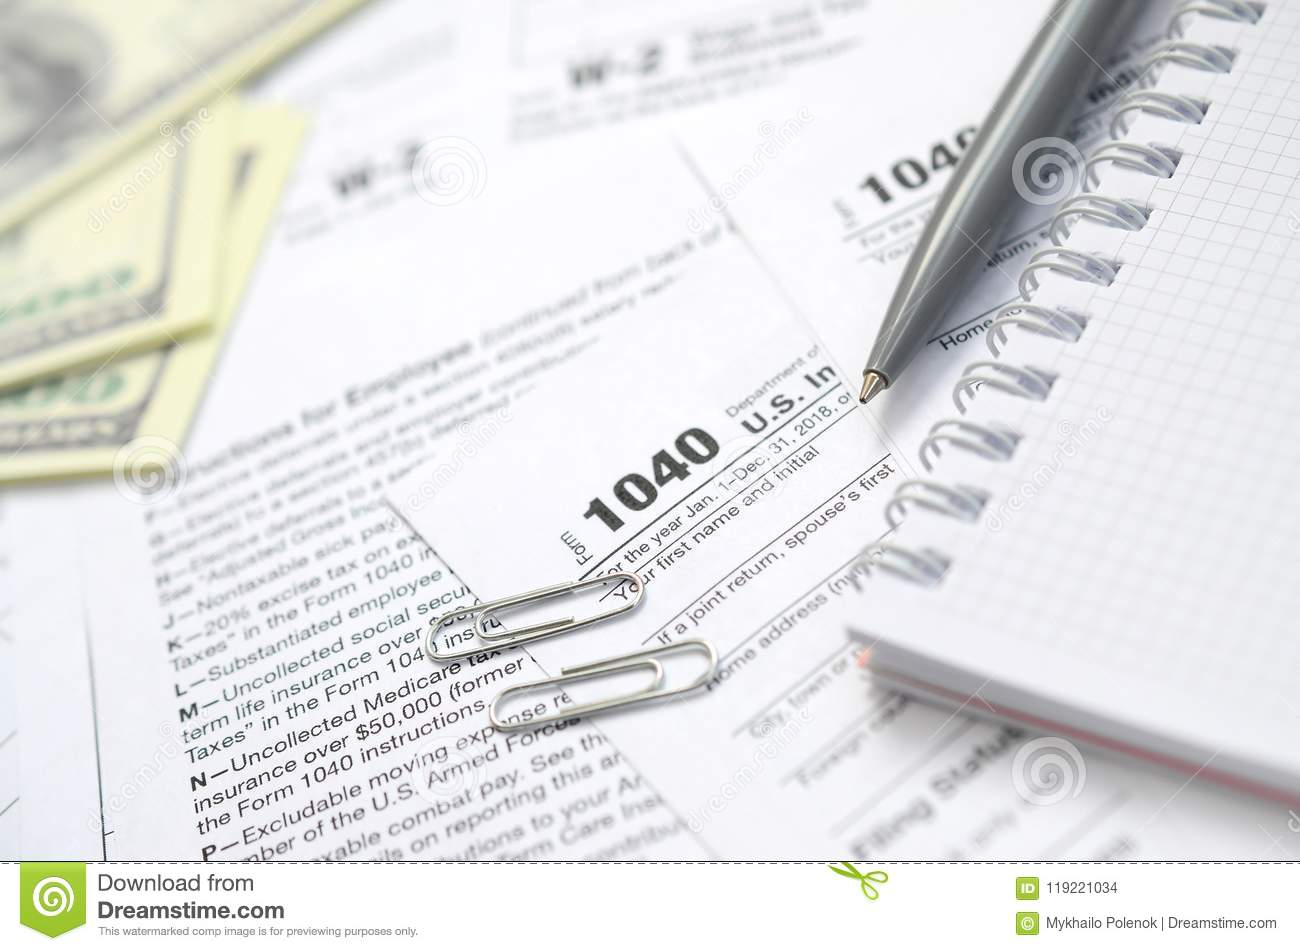 The Pen, Notebook And Dollar Bills Is Lies On The Tax Form 1040